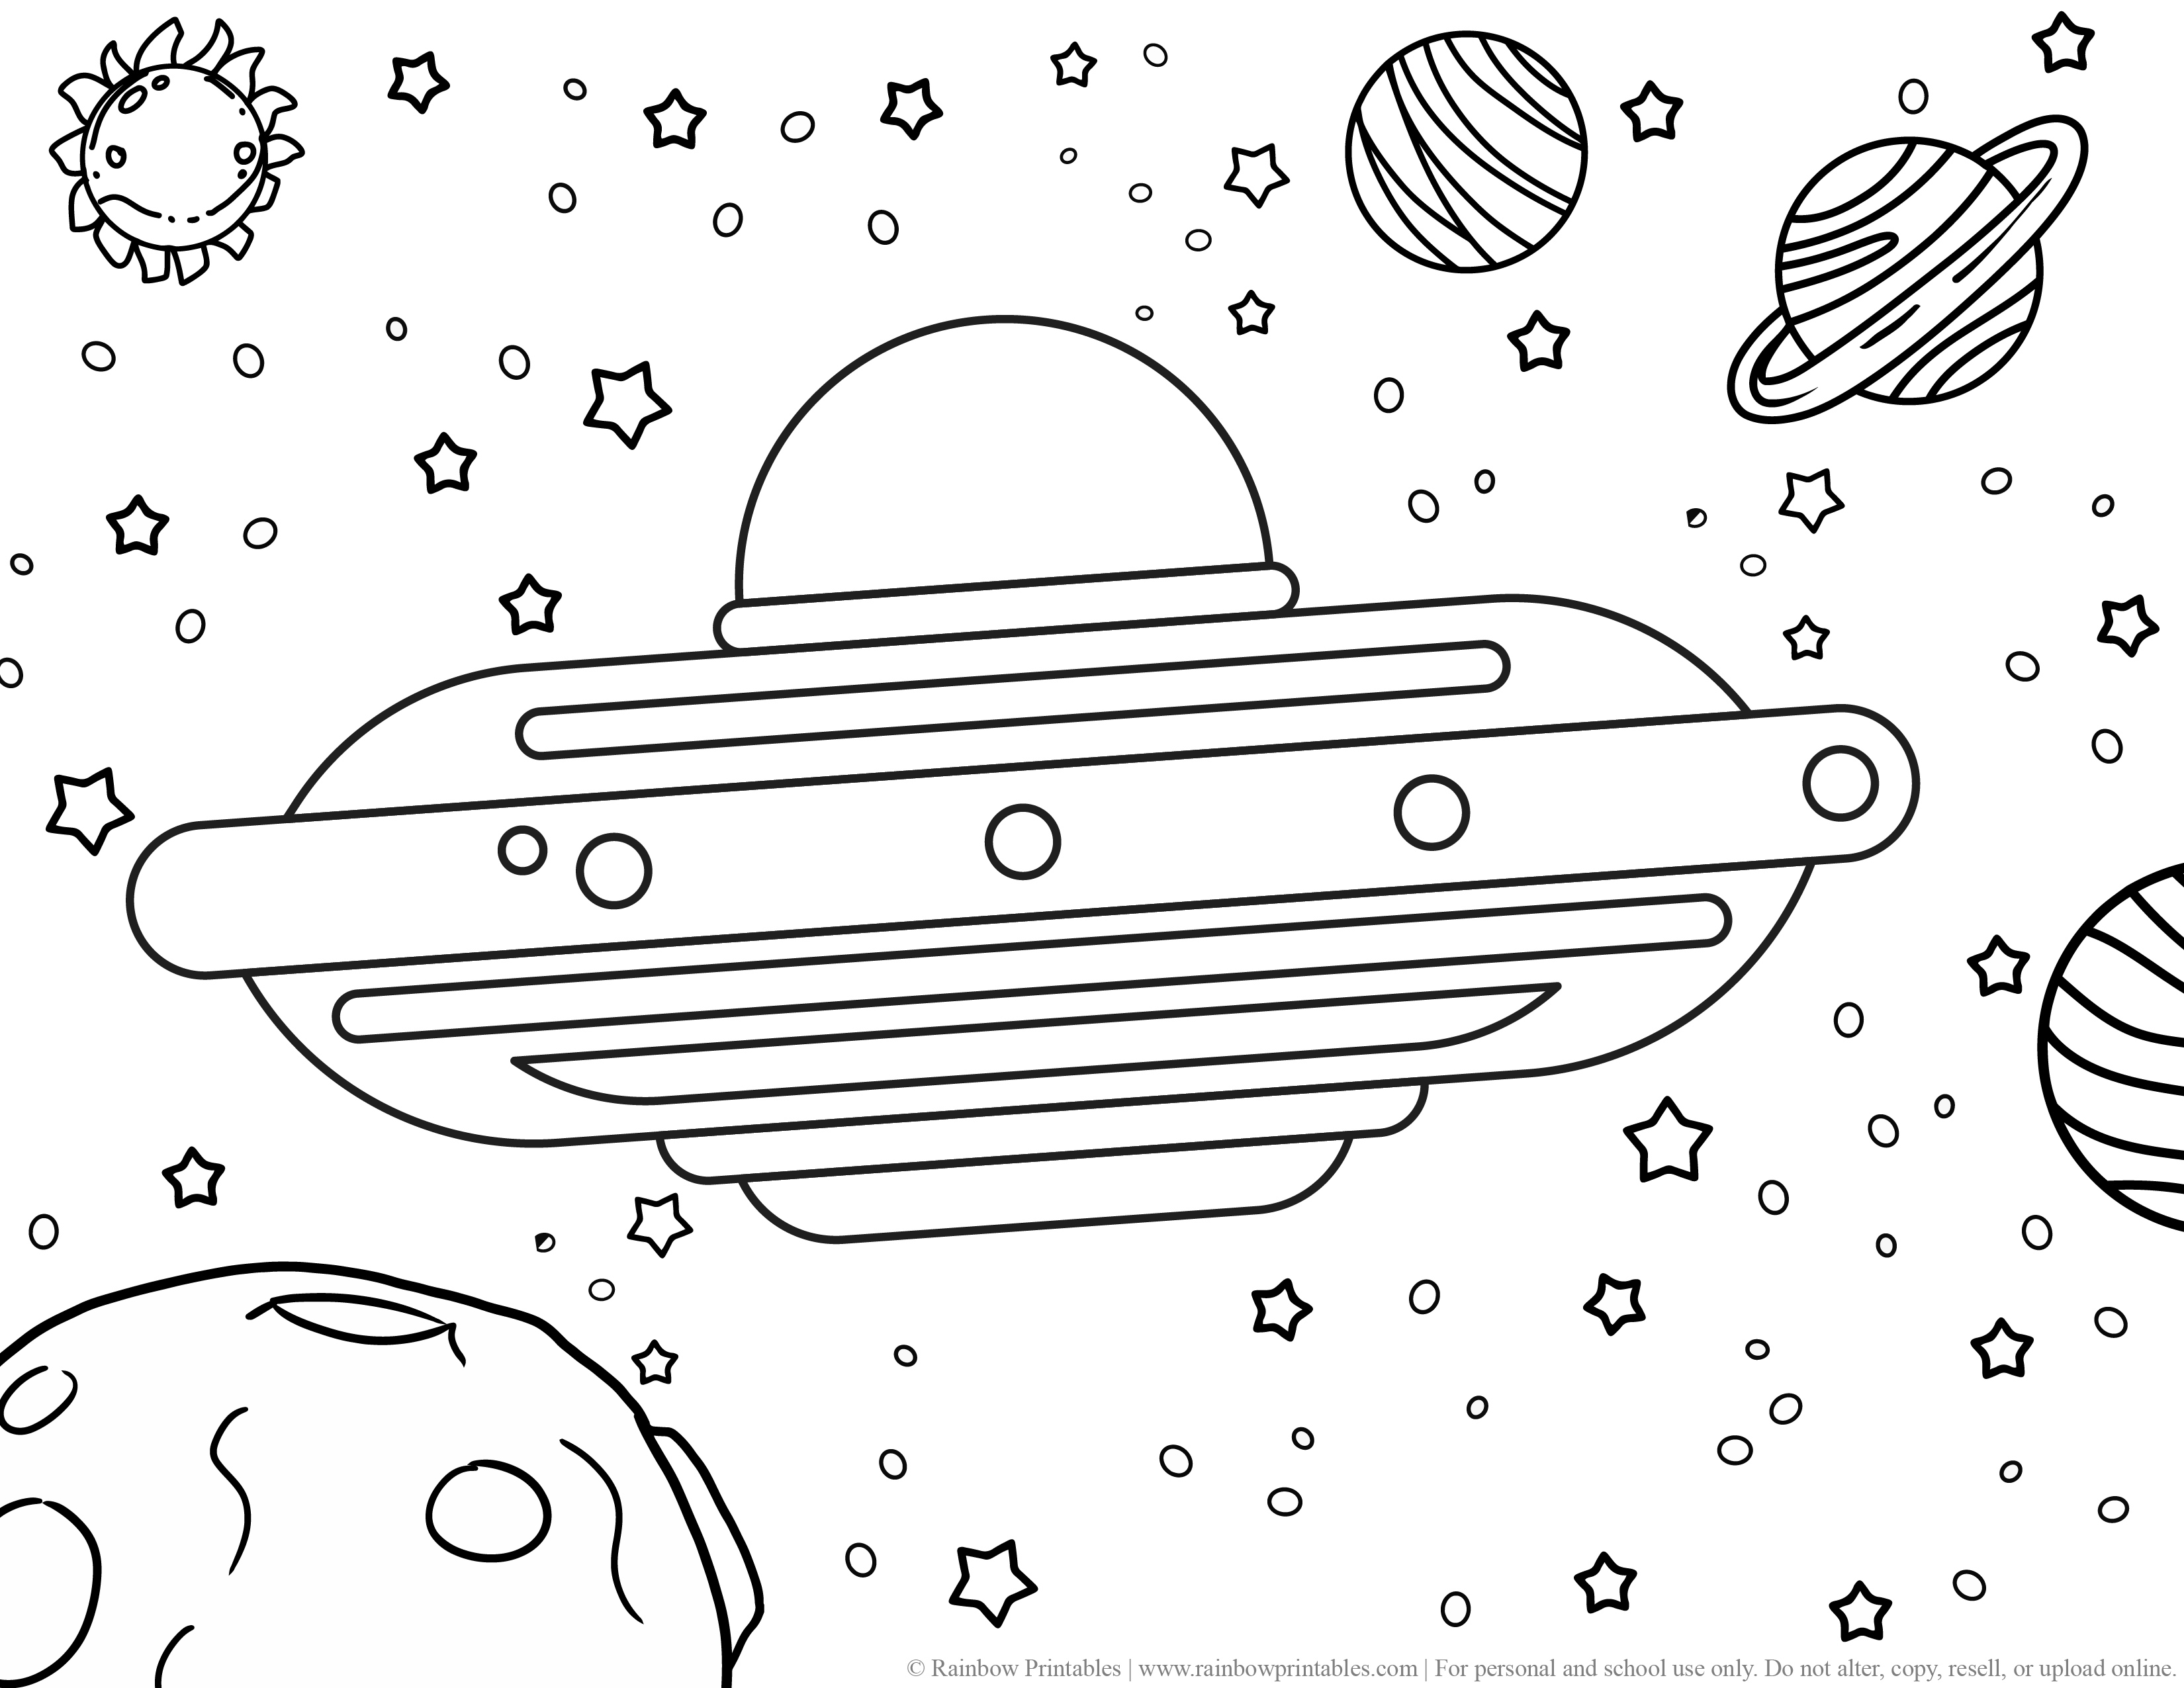 UFO Alien Planets Stars Sun Space GALAXY OUTERSPACE MOON Coloring Pages